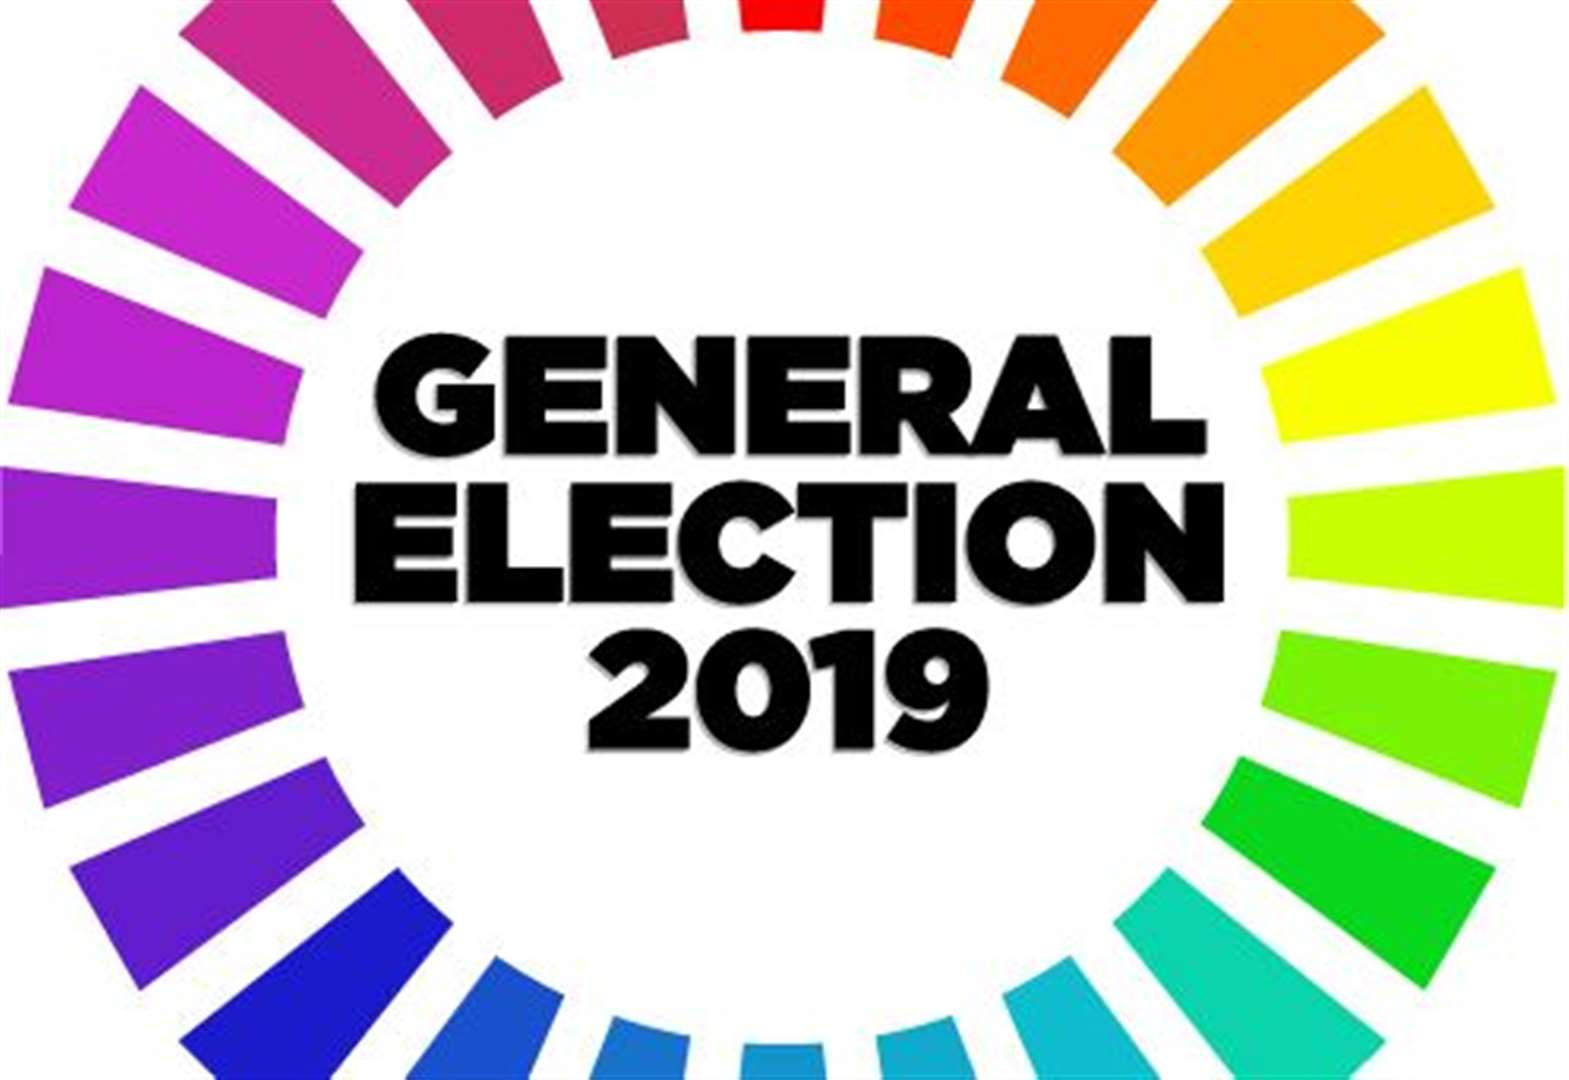 General Election 2019 result for Faversham and Mid Kent